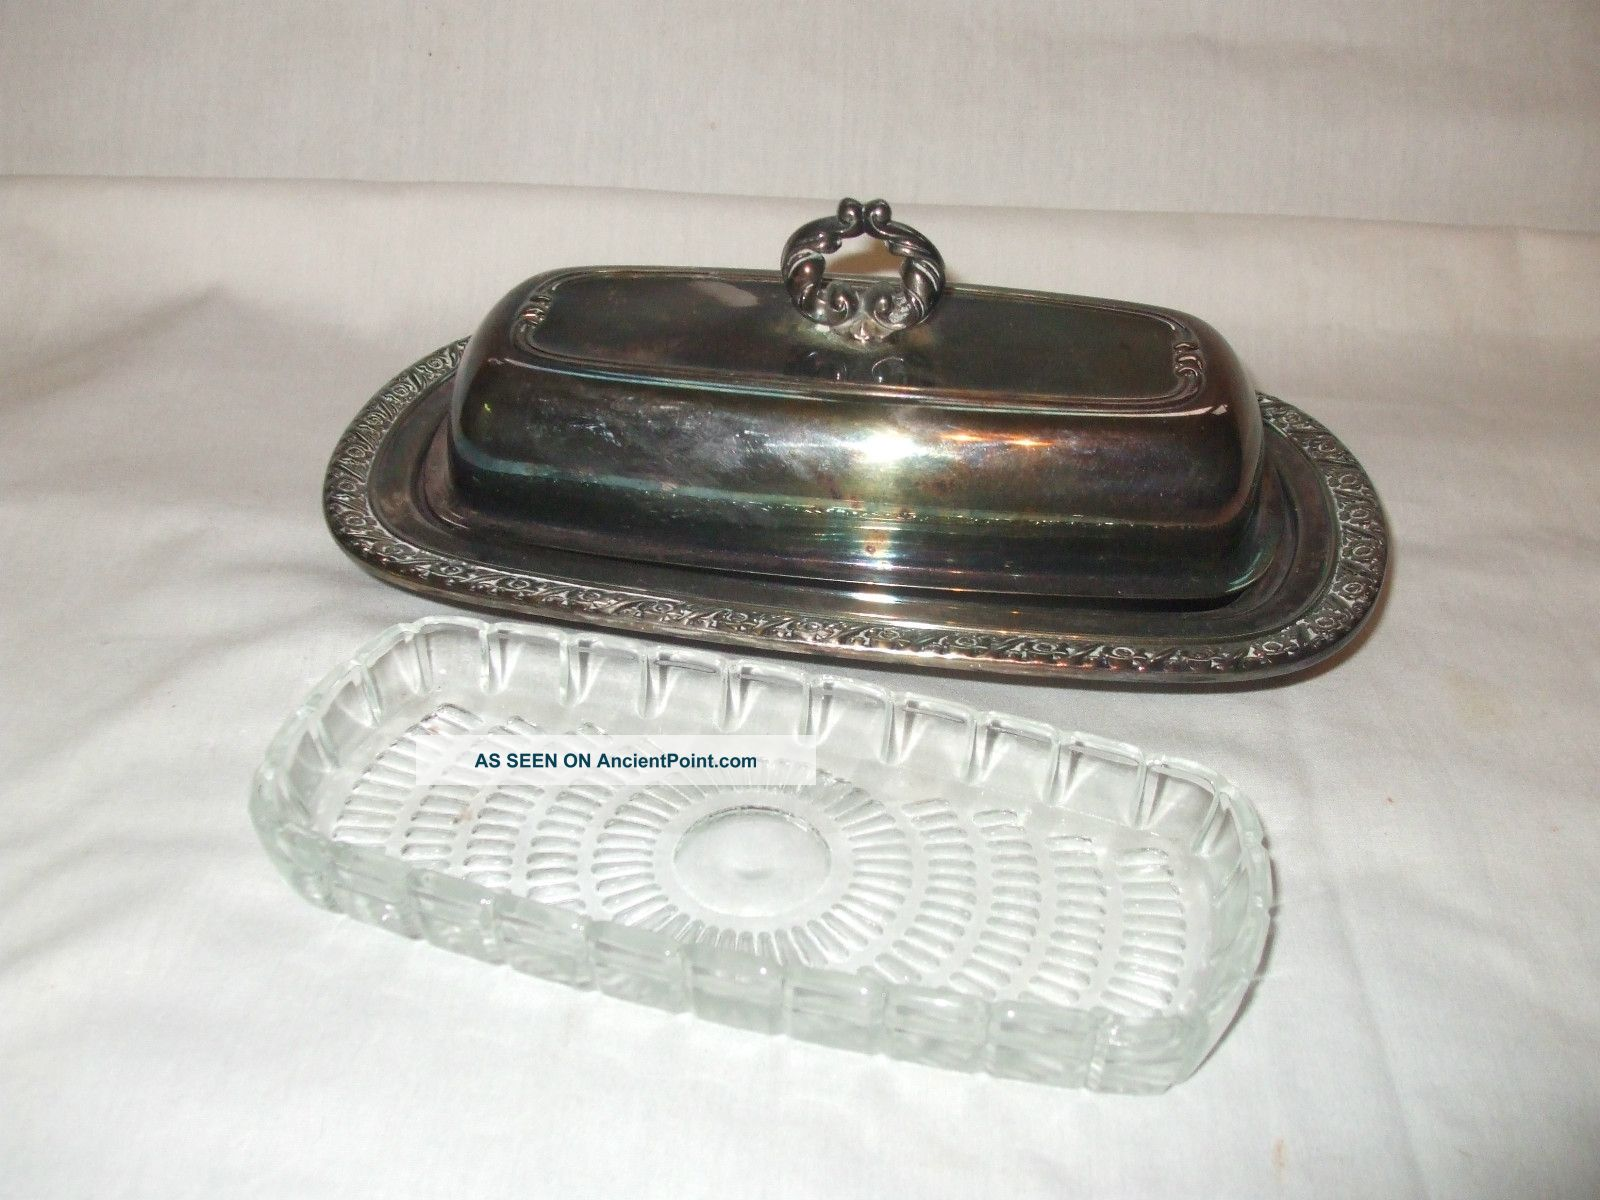 Vintage Oneida Ltd Silverplate Butter Dish With Glass Insert Butter Dishes photo